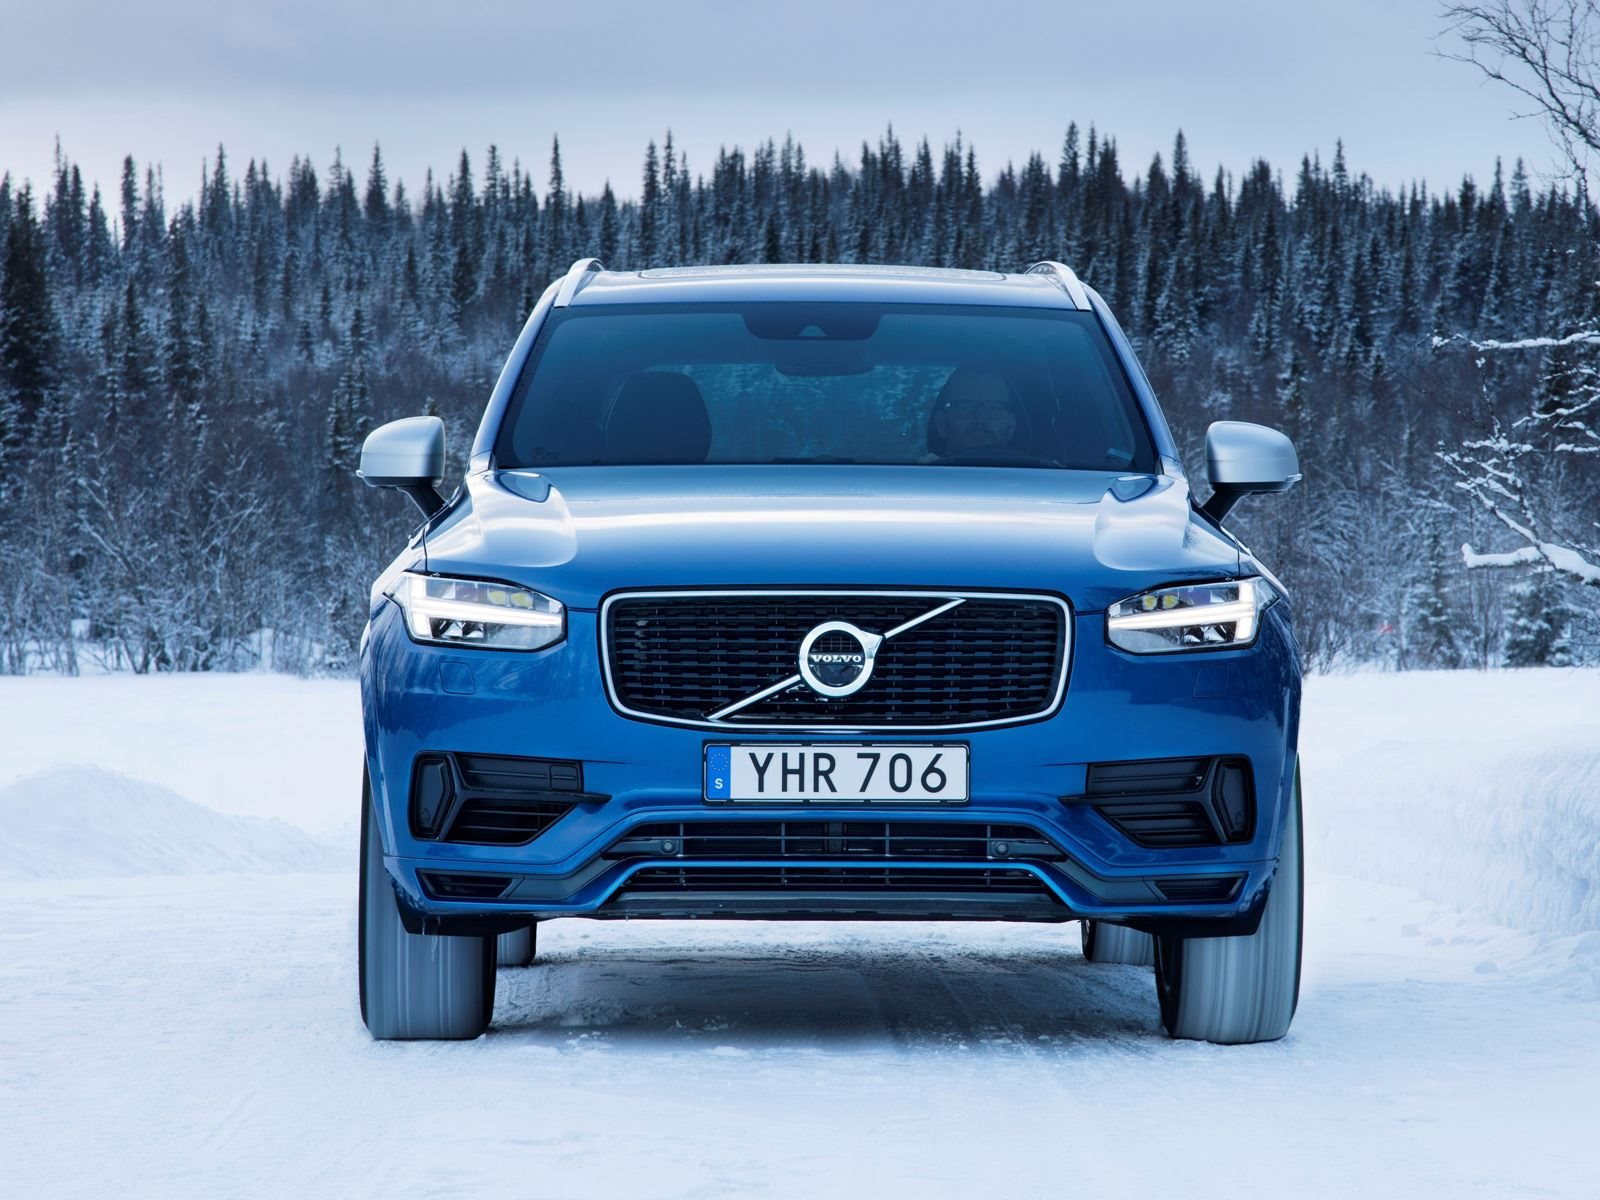 drive that can based out unit seconds and chinese in buy prices is volvo holding group the zhejiang which geely safe a from fast of meant sold suv china online offer new hangzhou consumers